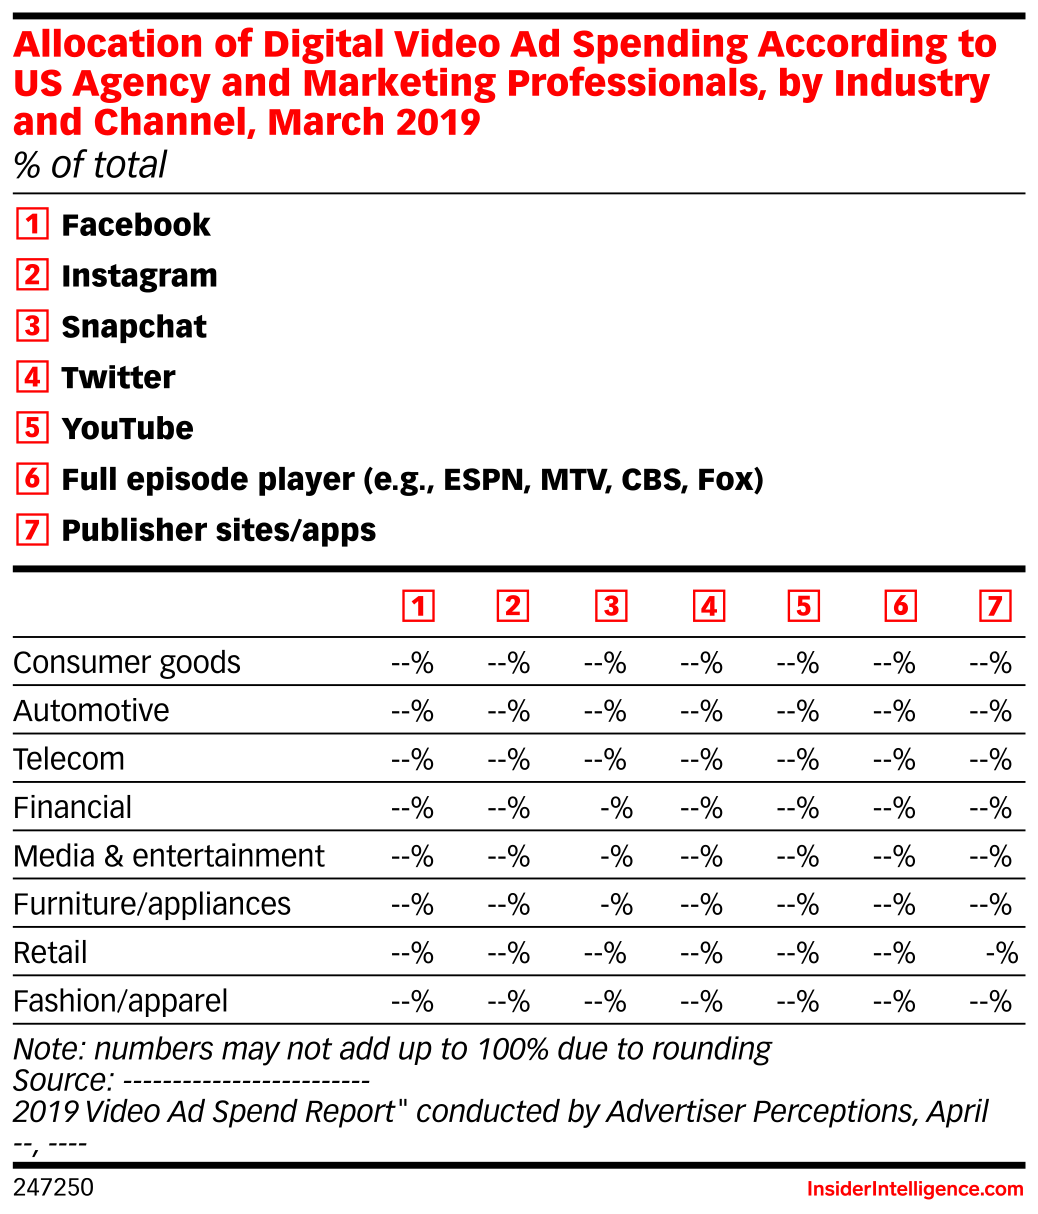 Allocation of Digital Video Ad Spending According to US Agency and Marketing Professionals, by Industry and Channel, March 2019 (% of total)